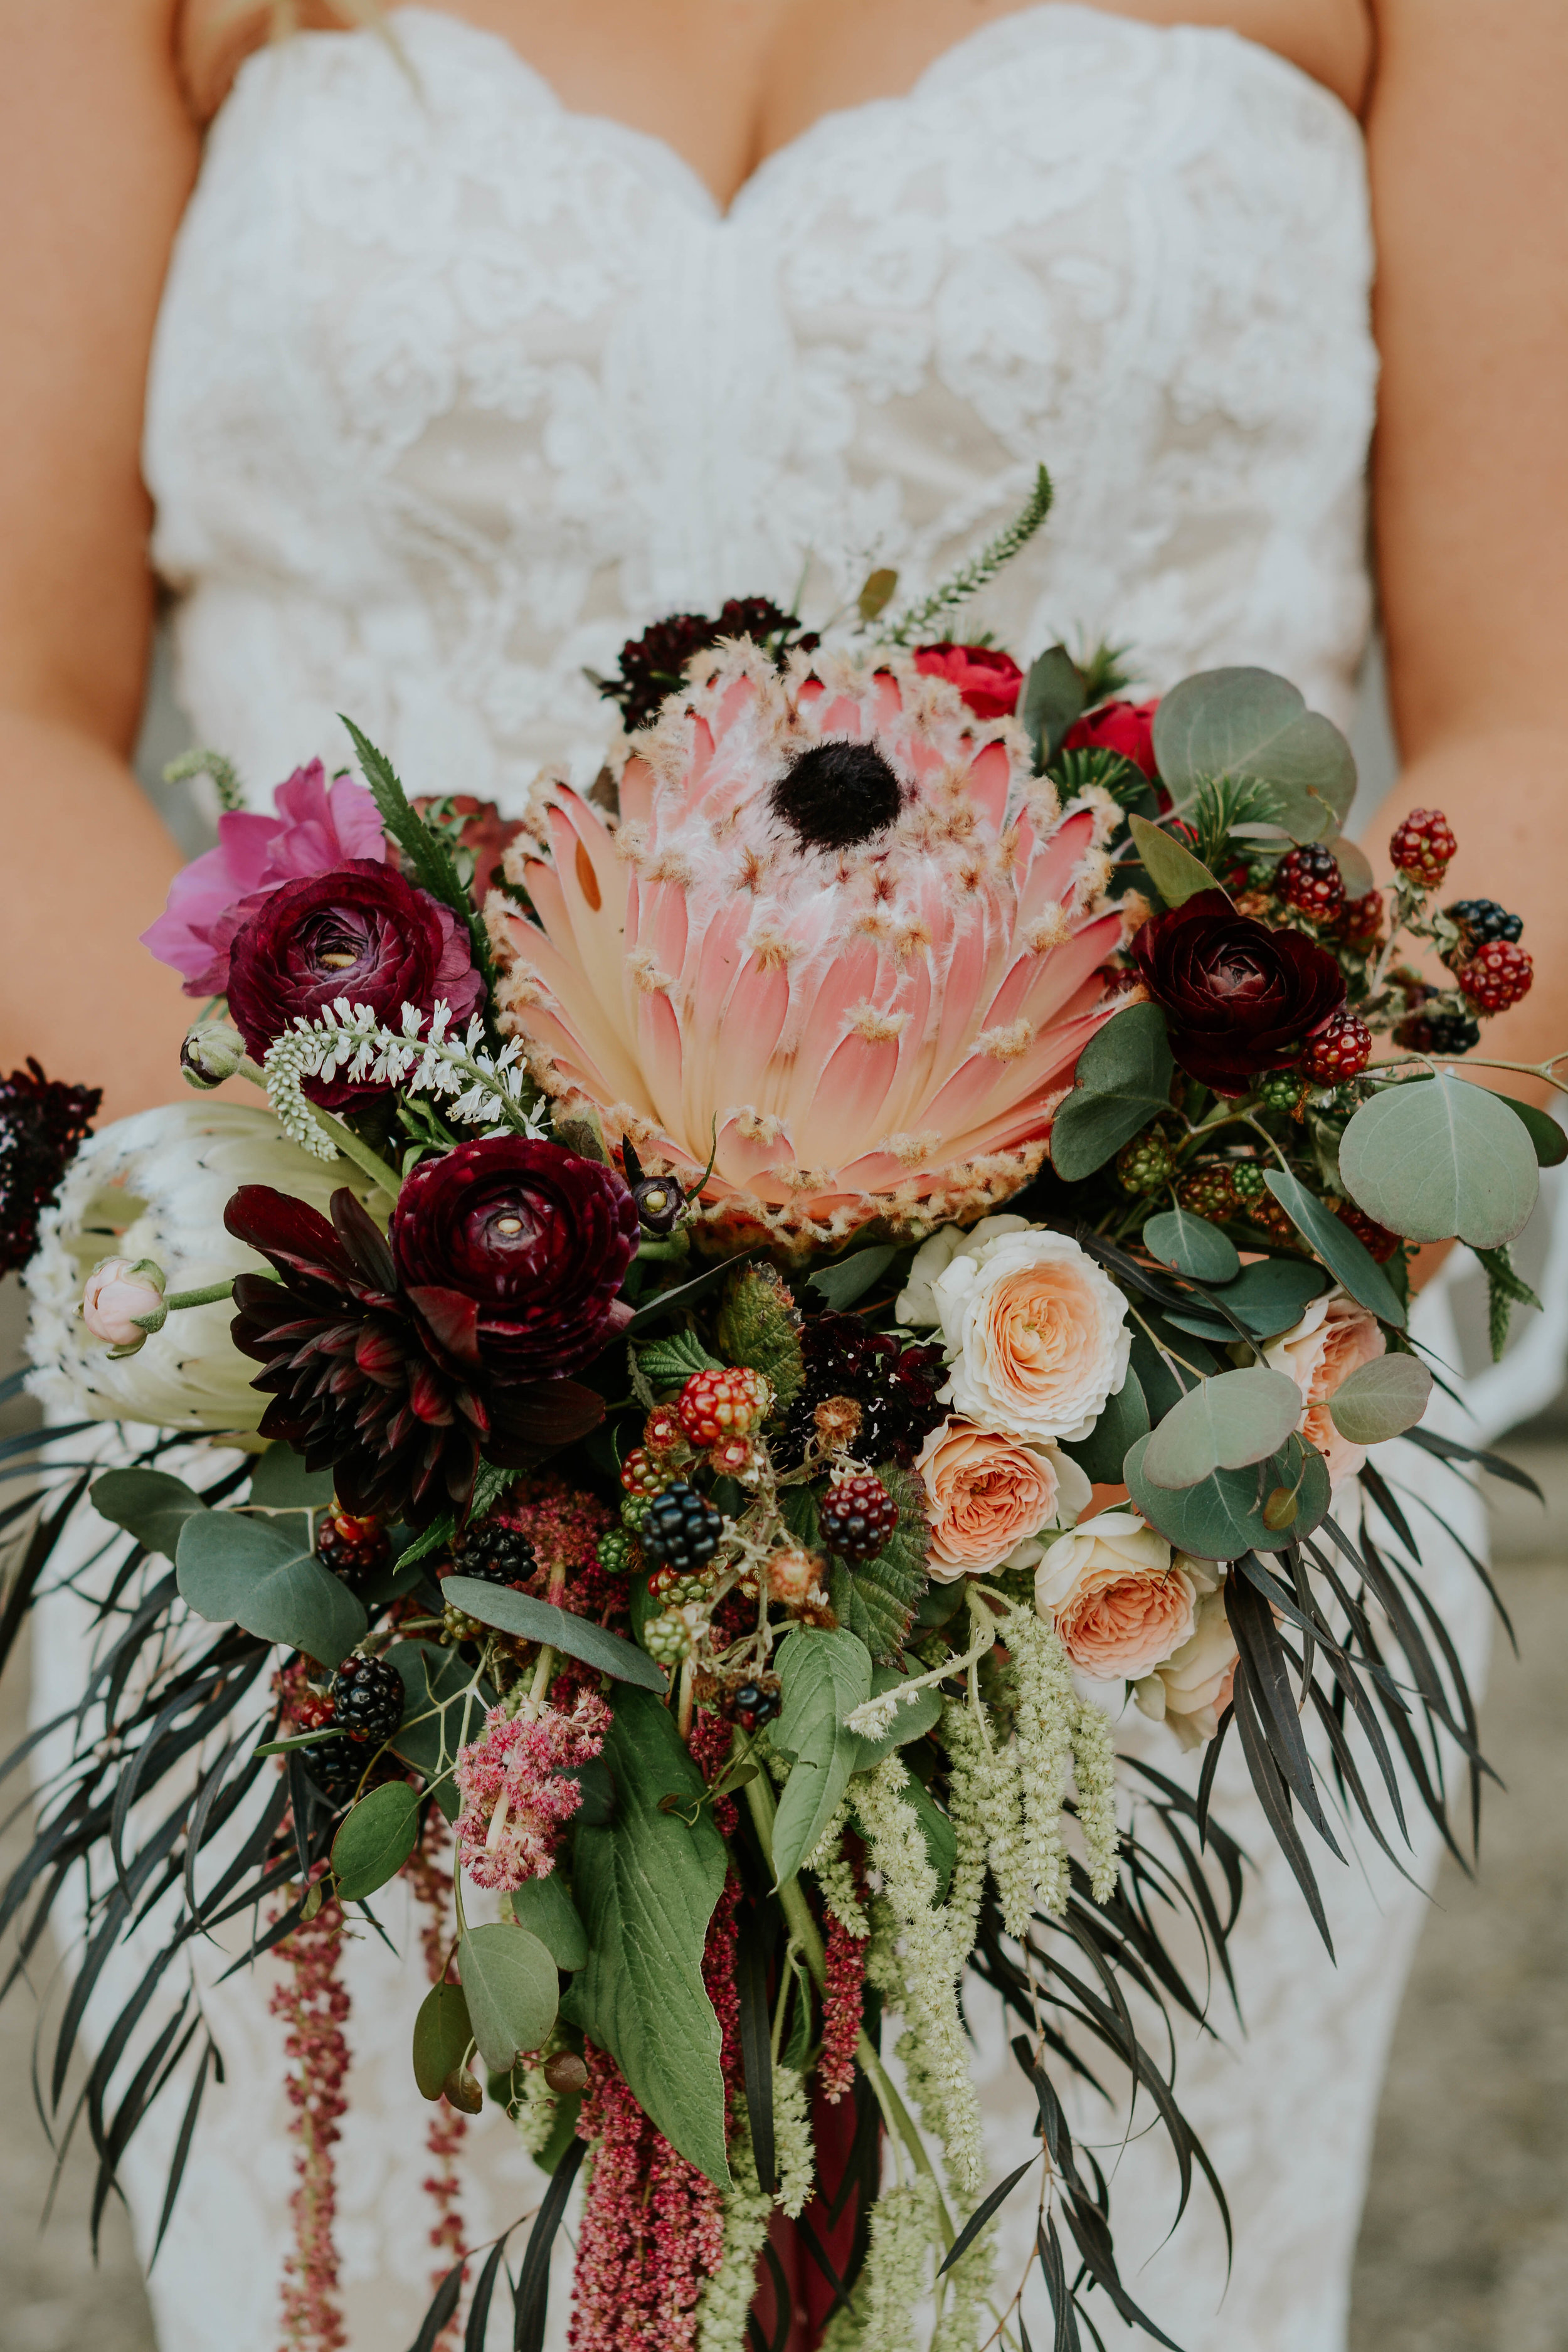 Bridal Bouquet with Protea, Garden Roses and Raspberries